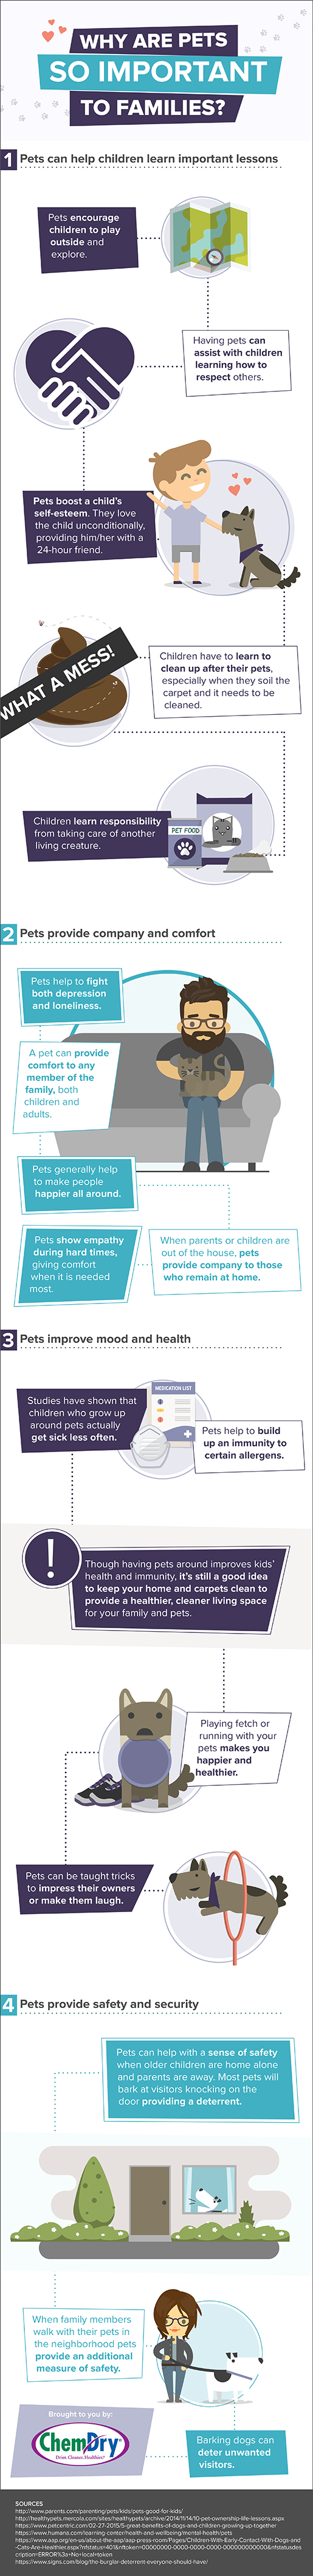 Why Pets Are So Important To Families